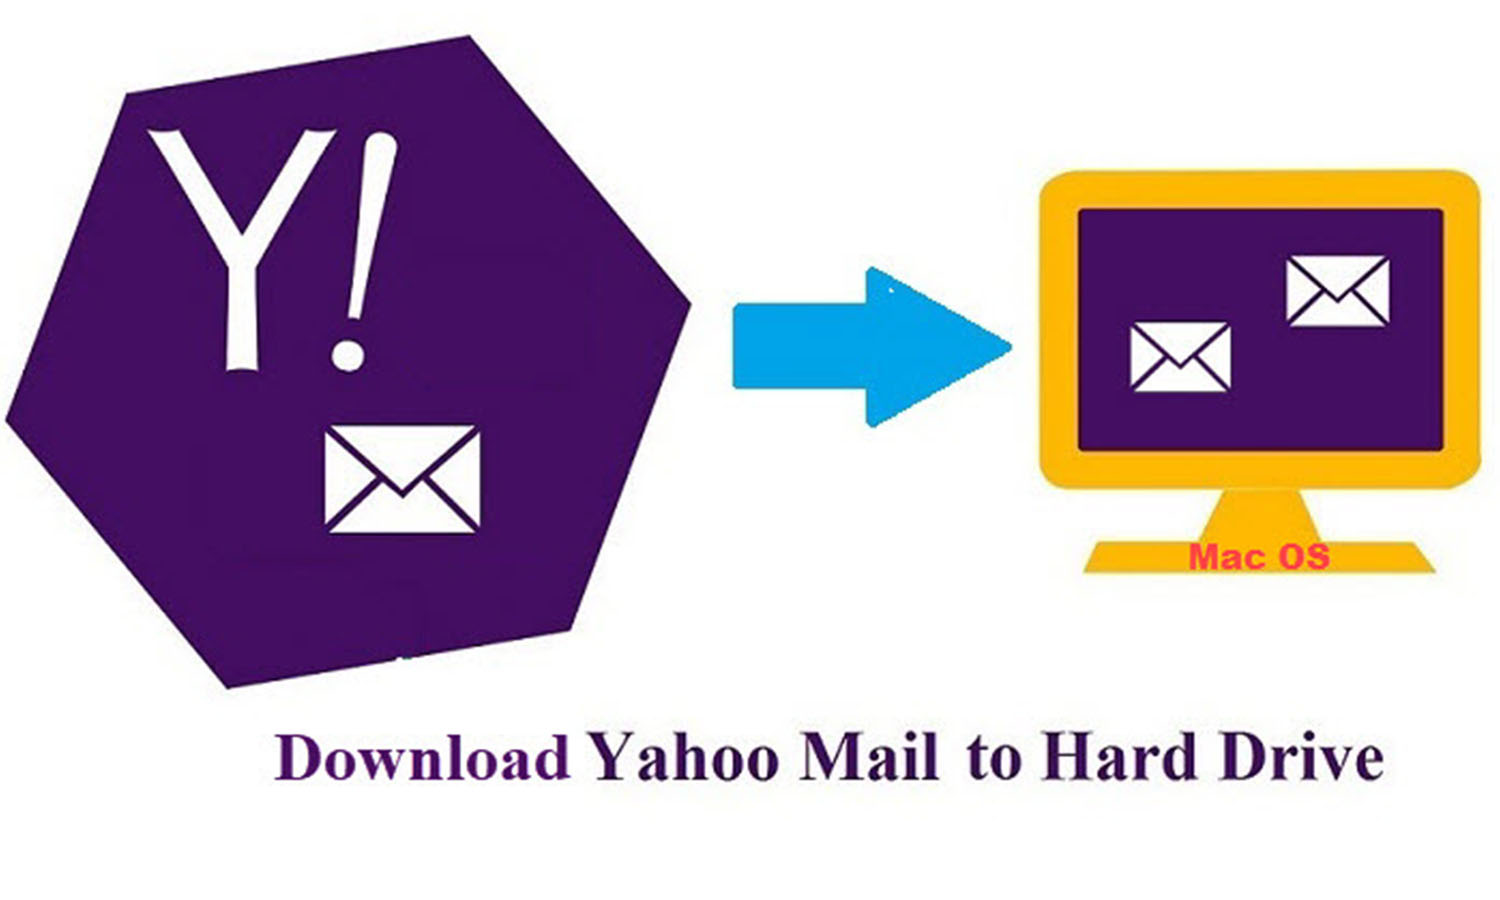 How to Save Yahoo Emails to Flash Drive / External Hard Drive on Mac?